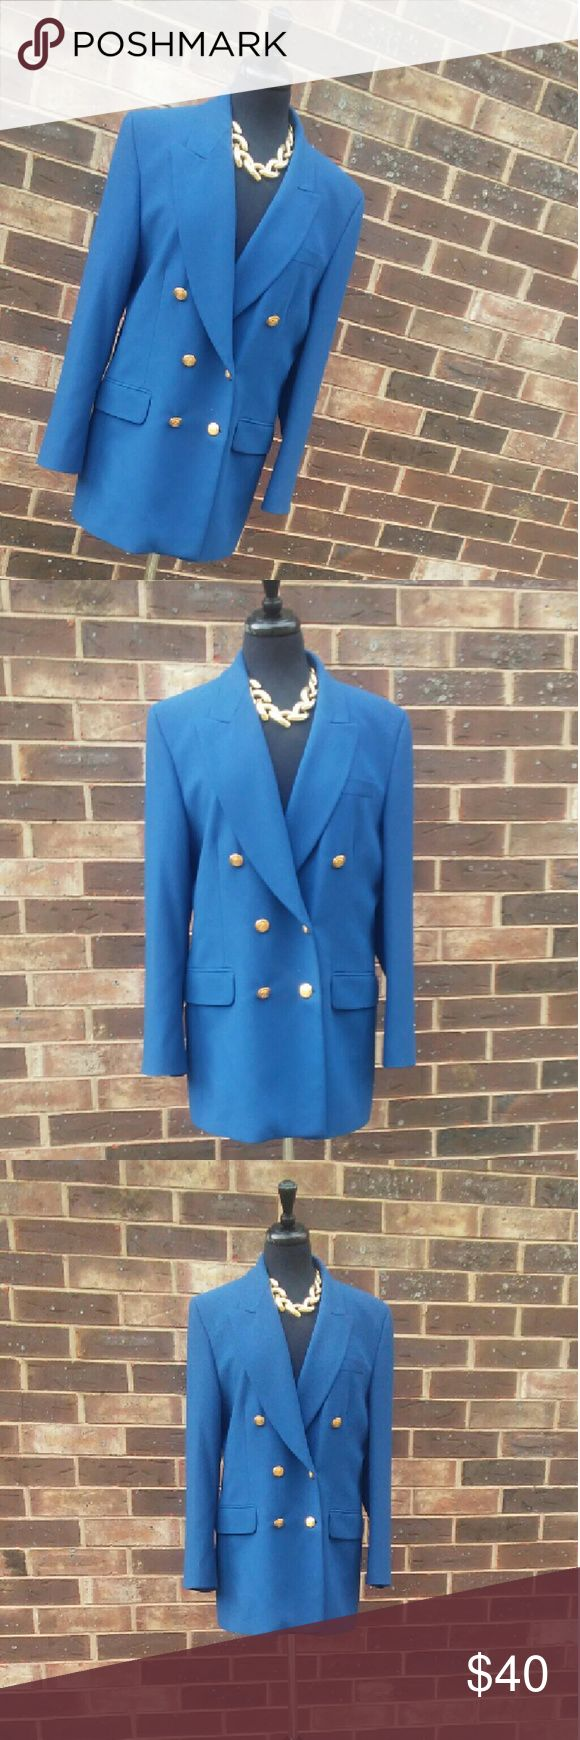 """Elegant Royal blue blazer This is a new condition blazer elegant and soft. Size 14 in the USA. There are extra buttons. This is truly a beautiful color. Pickets aren't usable.  30"""" long. Marks&Spencer Jackets & Coats Blazers"""